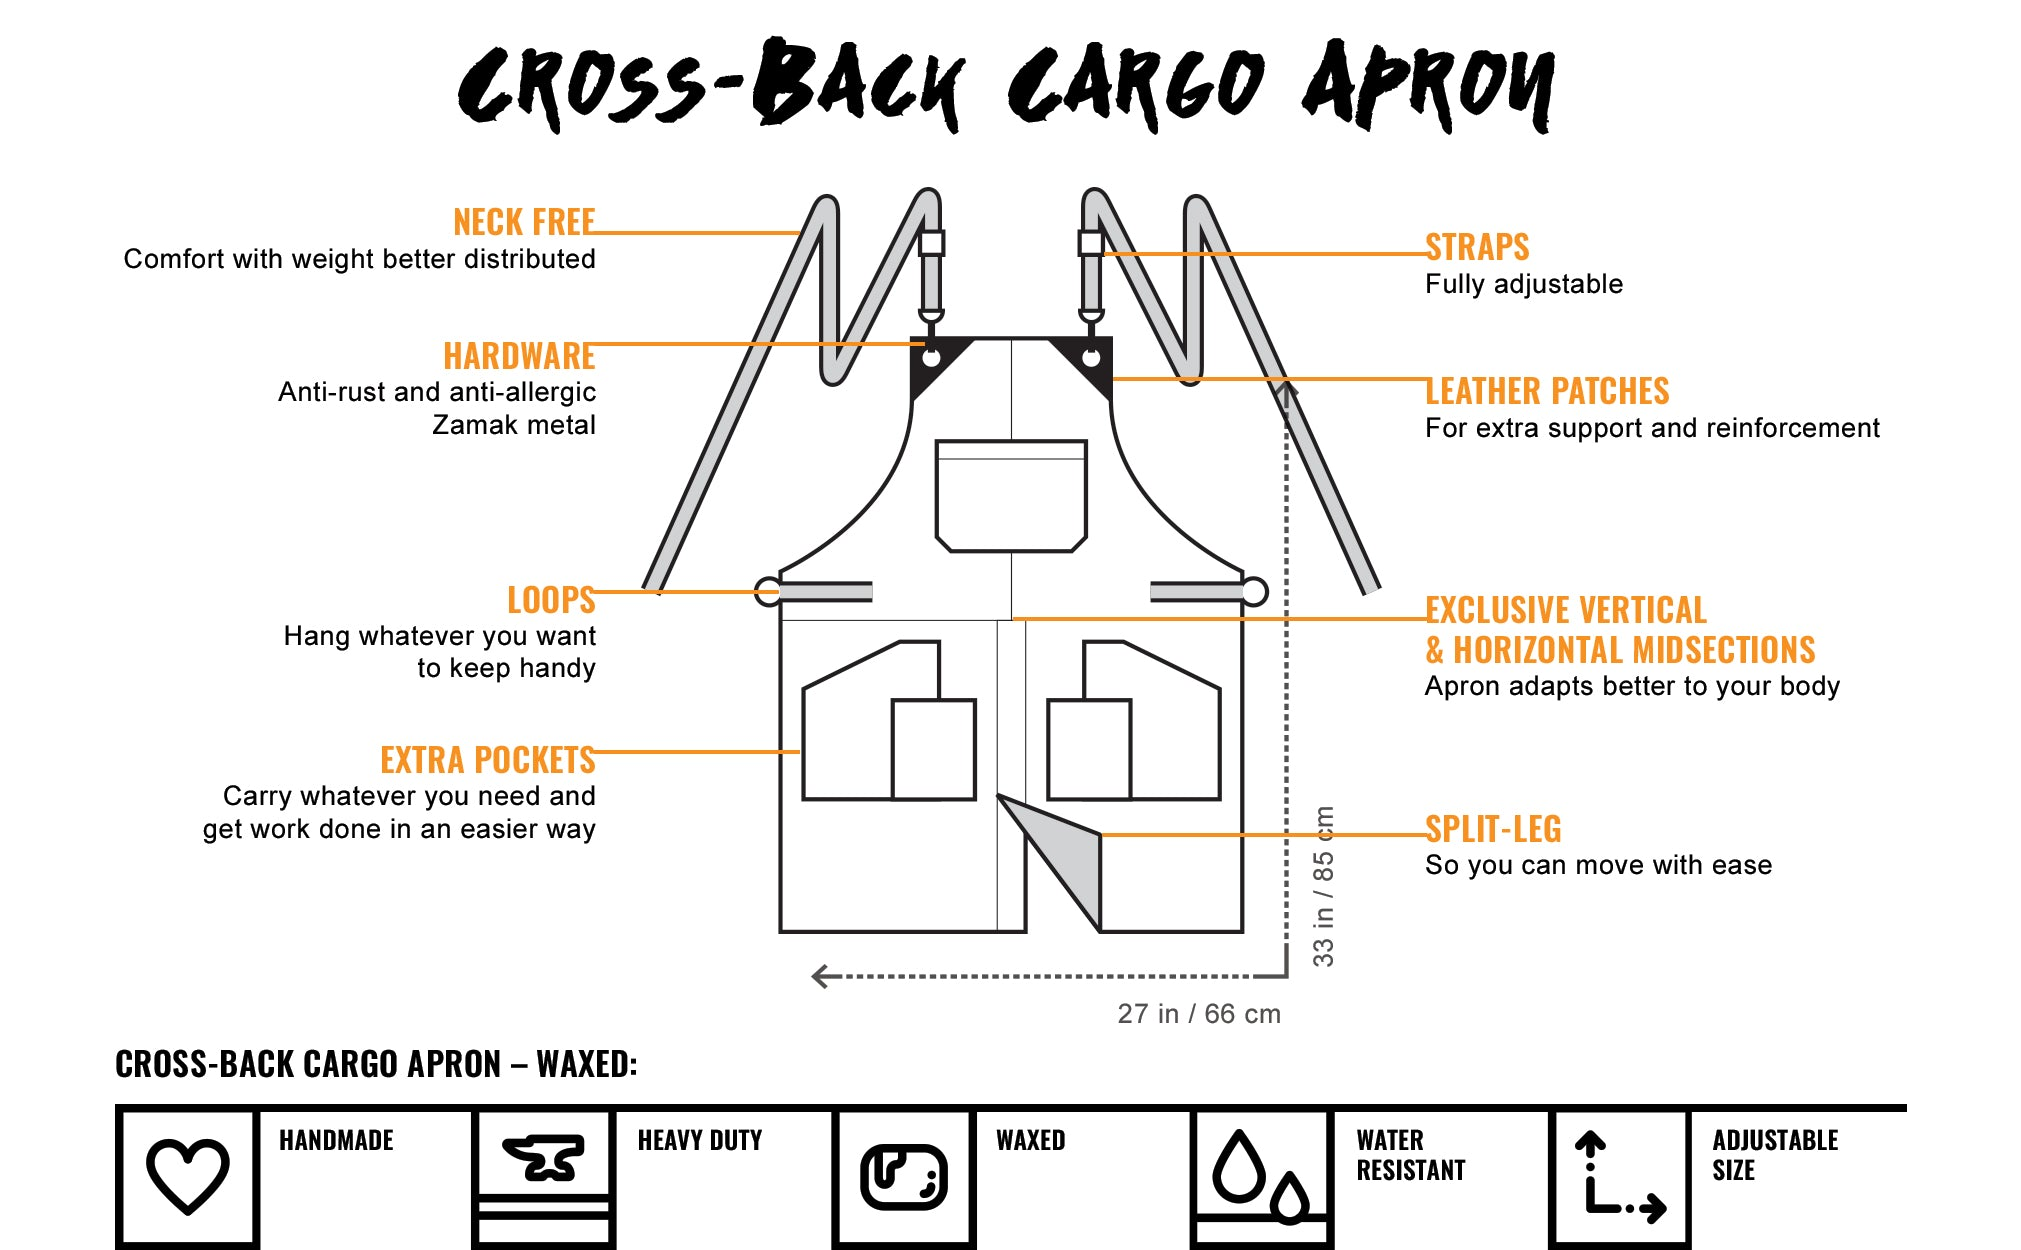 Under NY Sky Cross-Back Cargo Apron - Features Chart